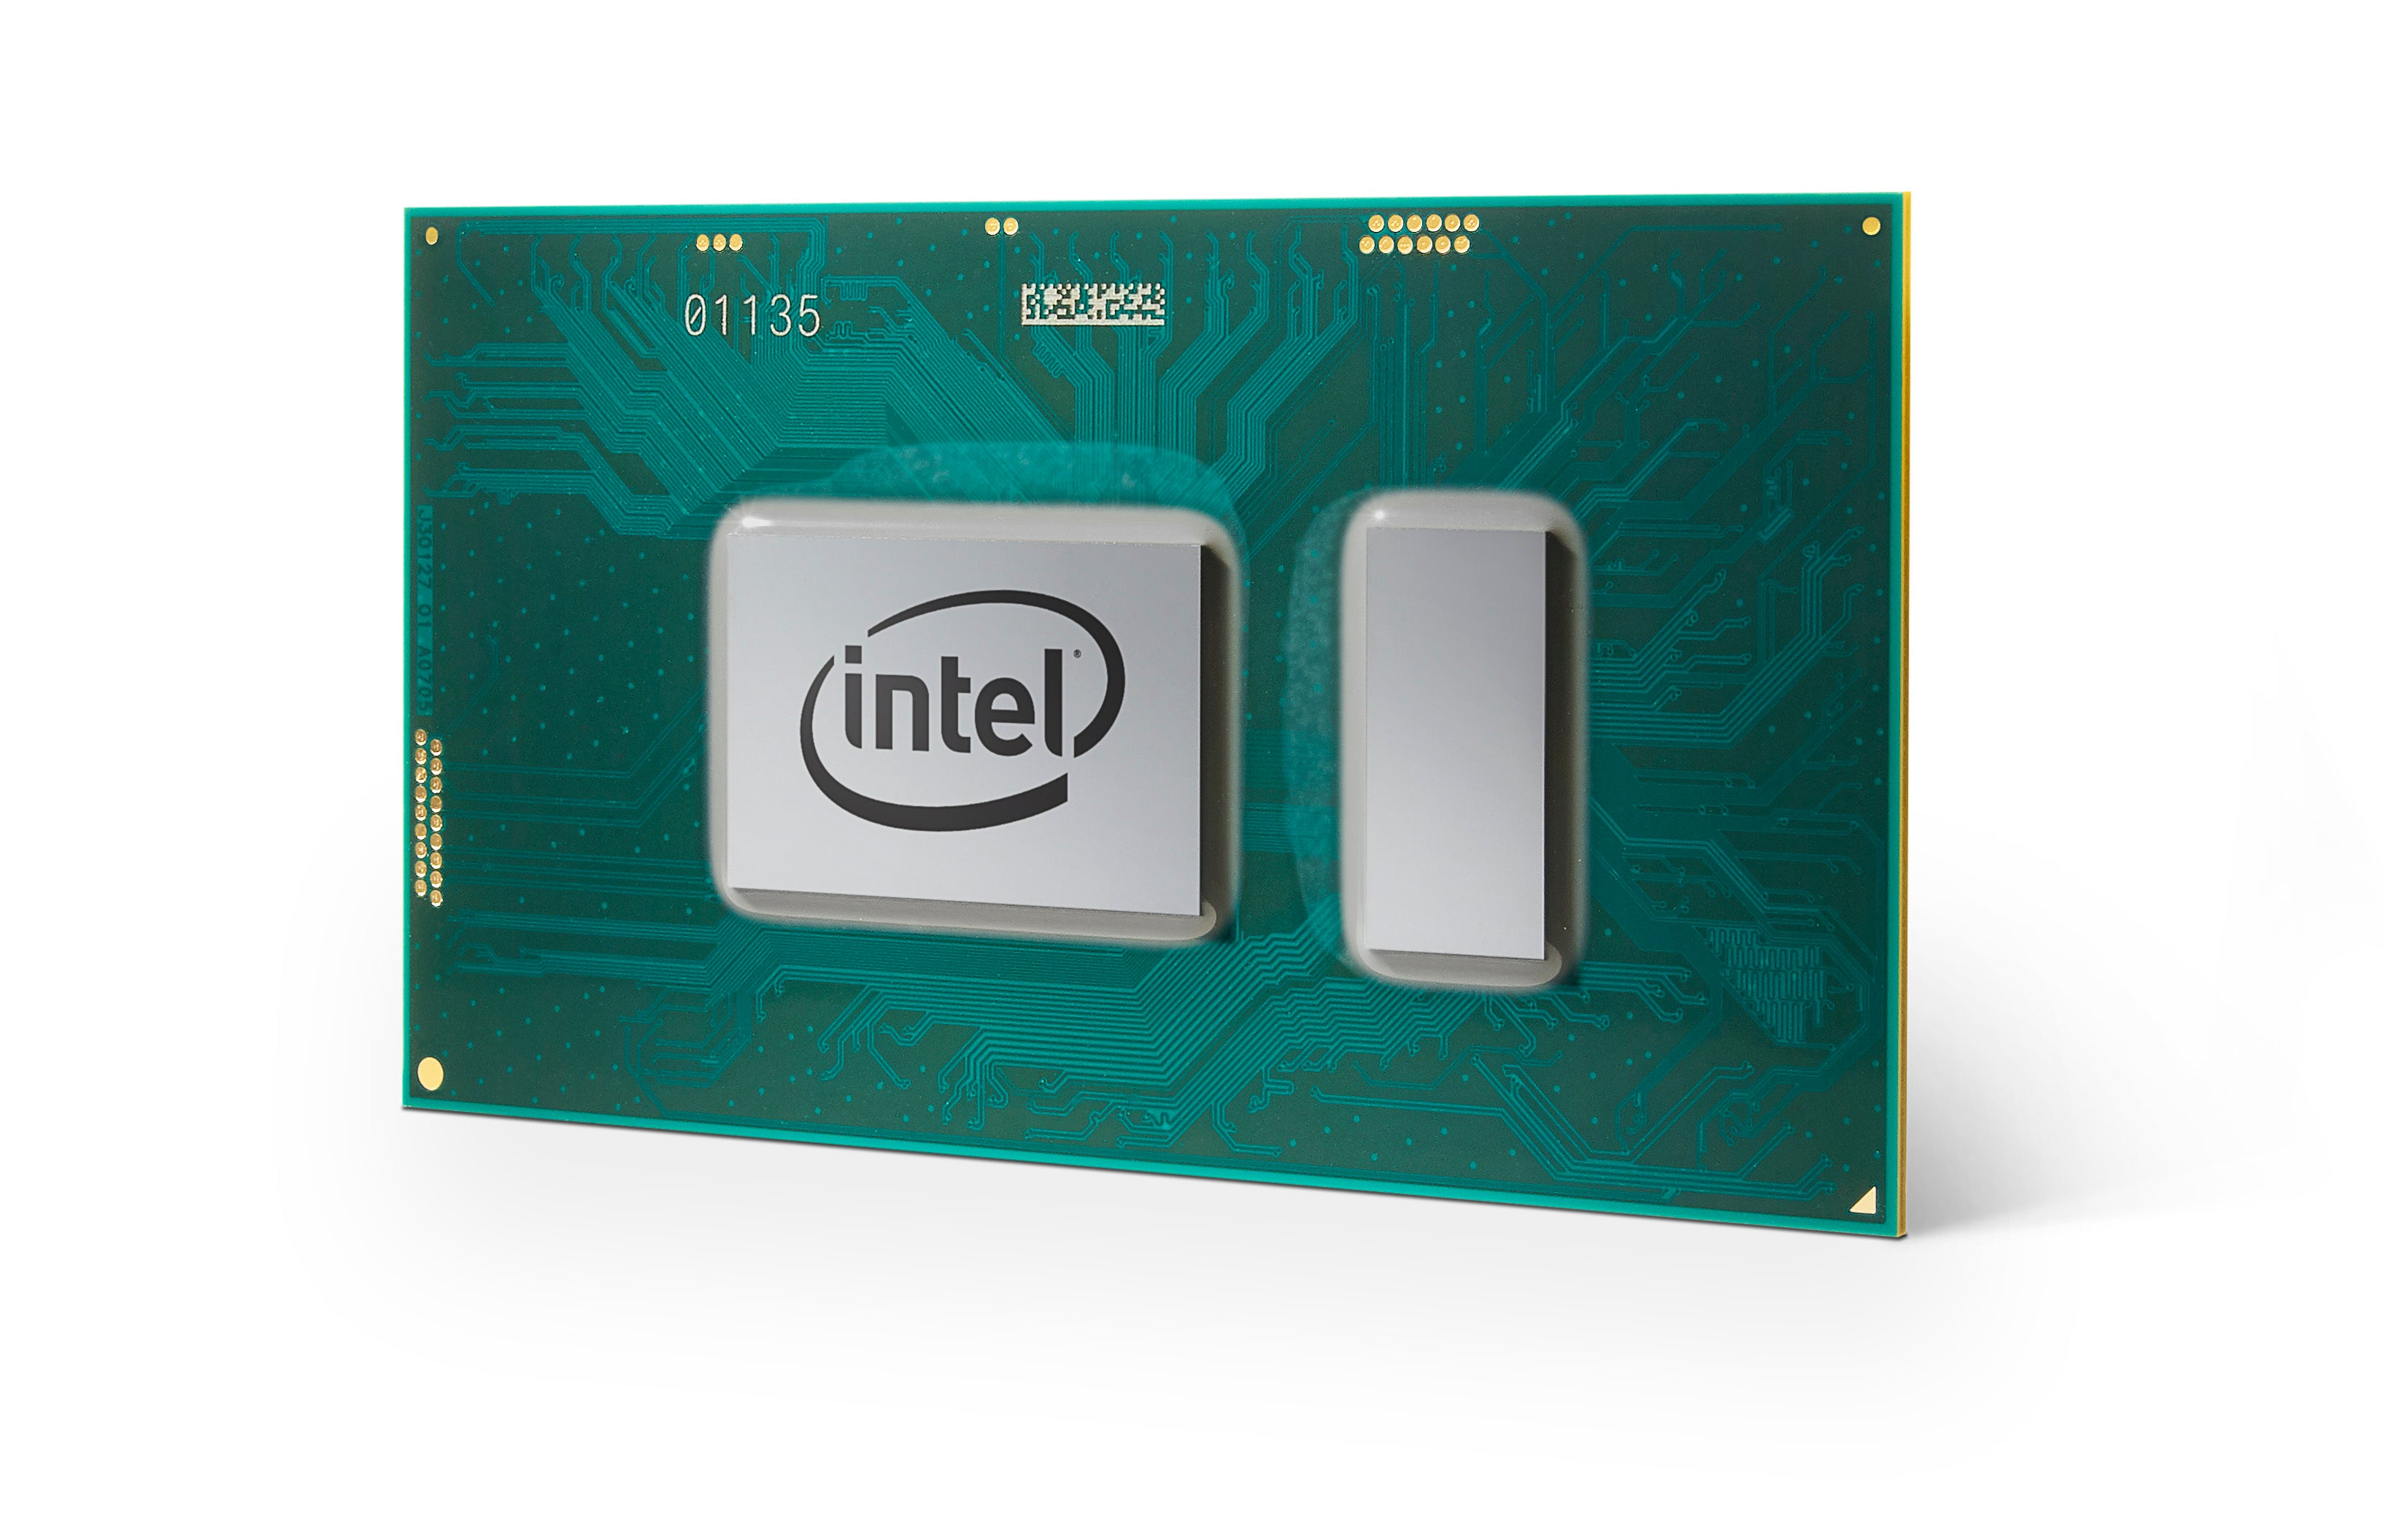 Intel touts 40 percent performance boost in eighth-generation processors